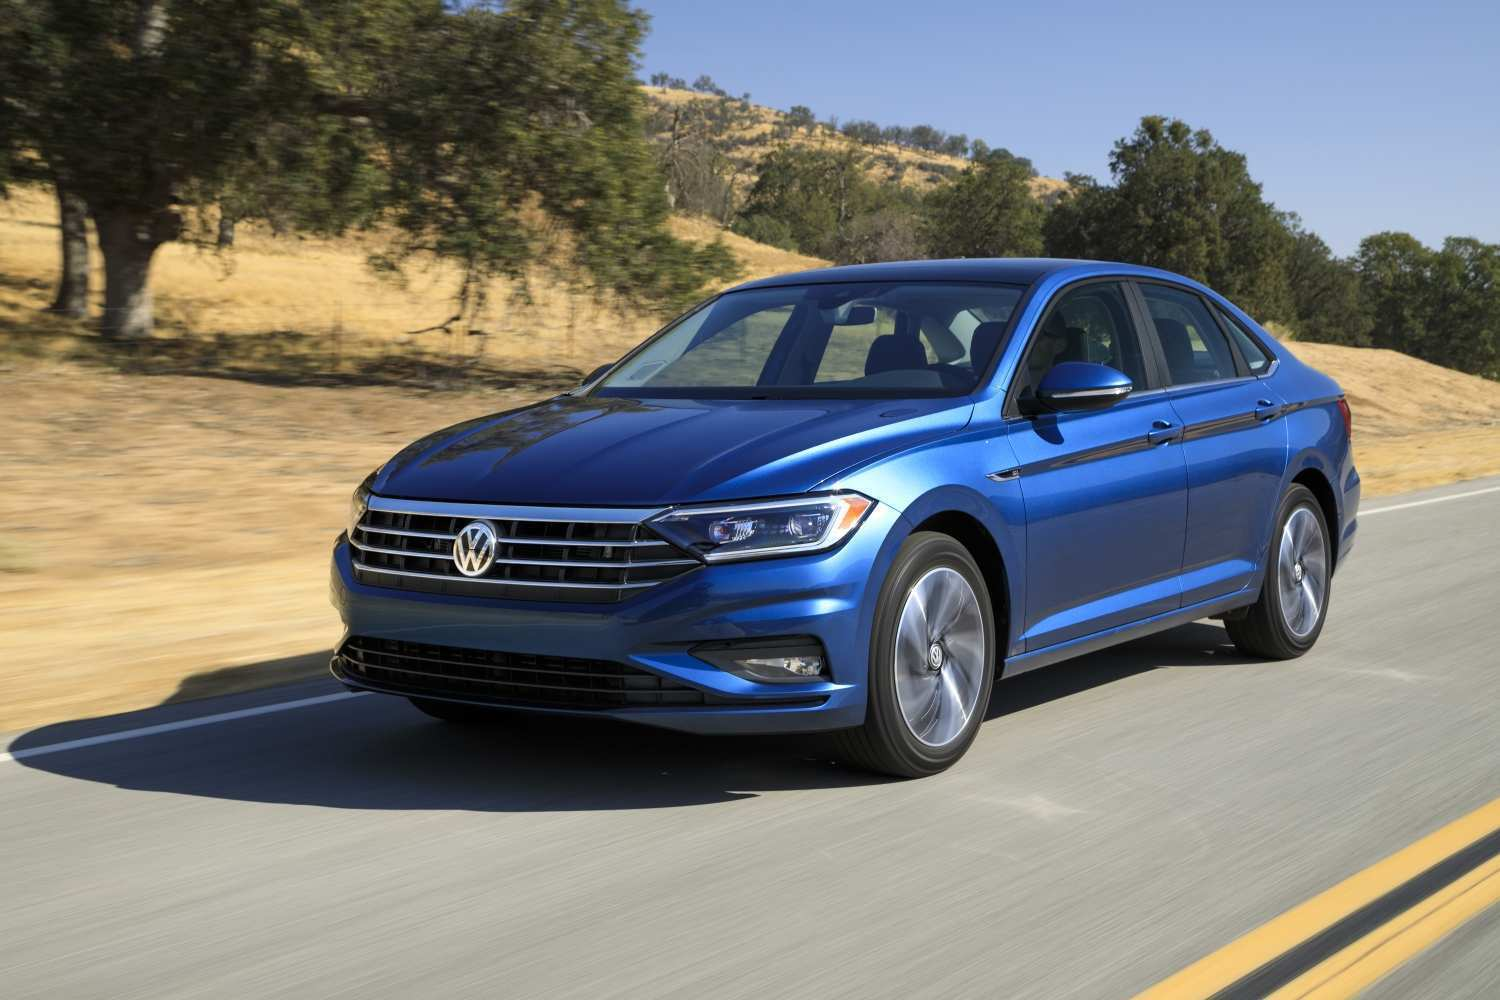 53 New Volkswagen 2019 Price Spy Shoot